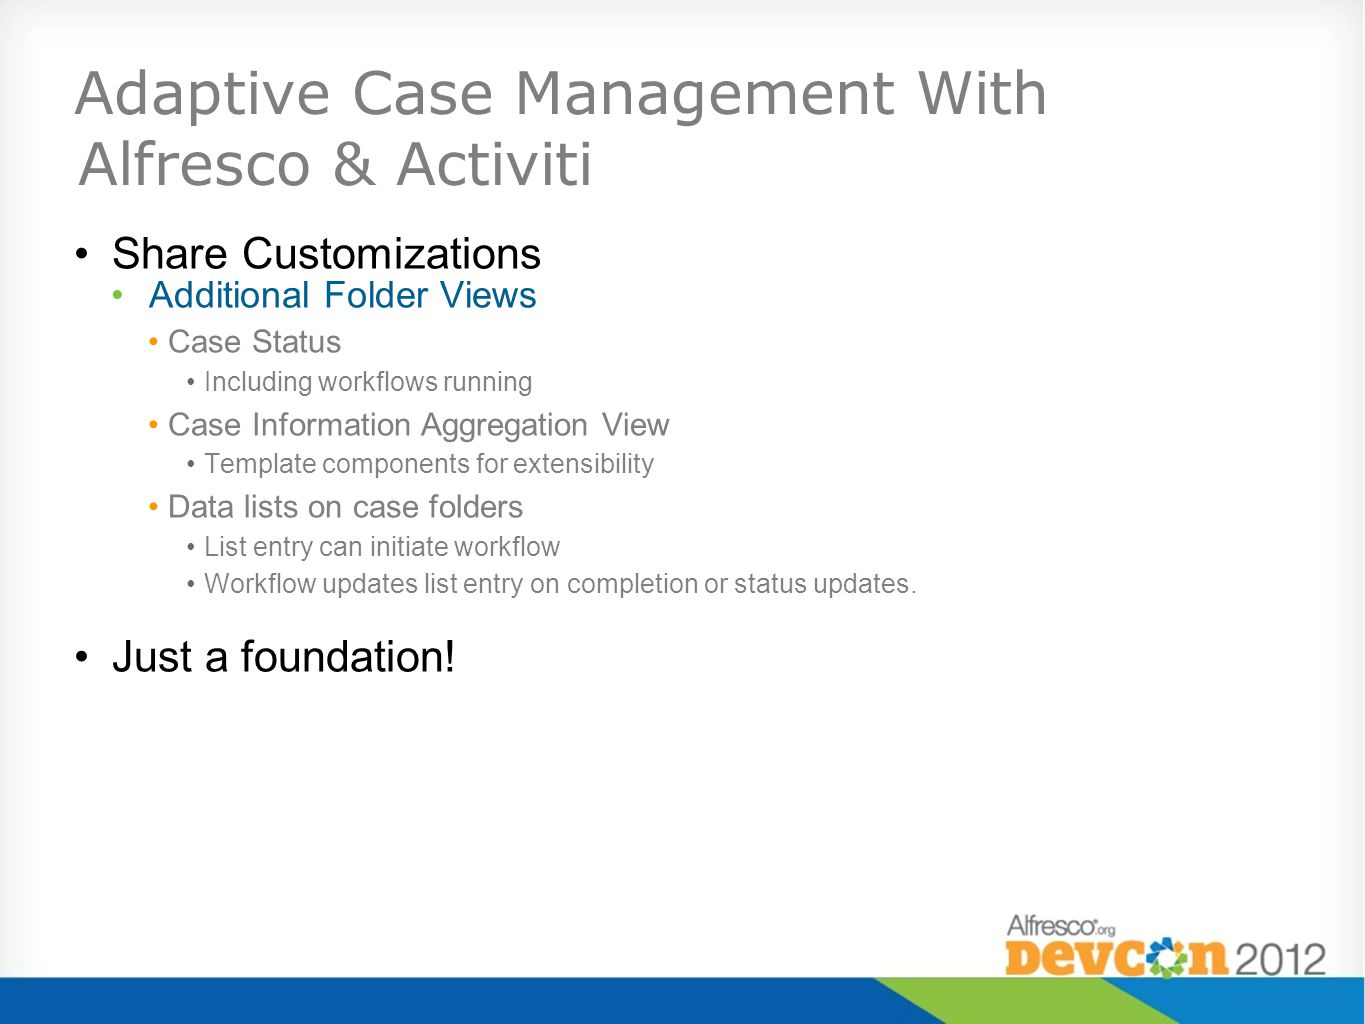 Adaptive Case Management With Alfresco & Activiti Share Customizations Additional Folder Views Case Status Including workflows running Case Information Aggregation View Template components for extensibility Data lists on case folders List entry can initiate workflow Workflow updates list entry on completion or status updates.